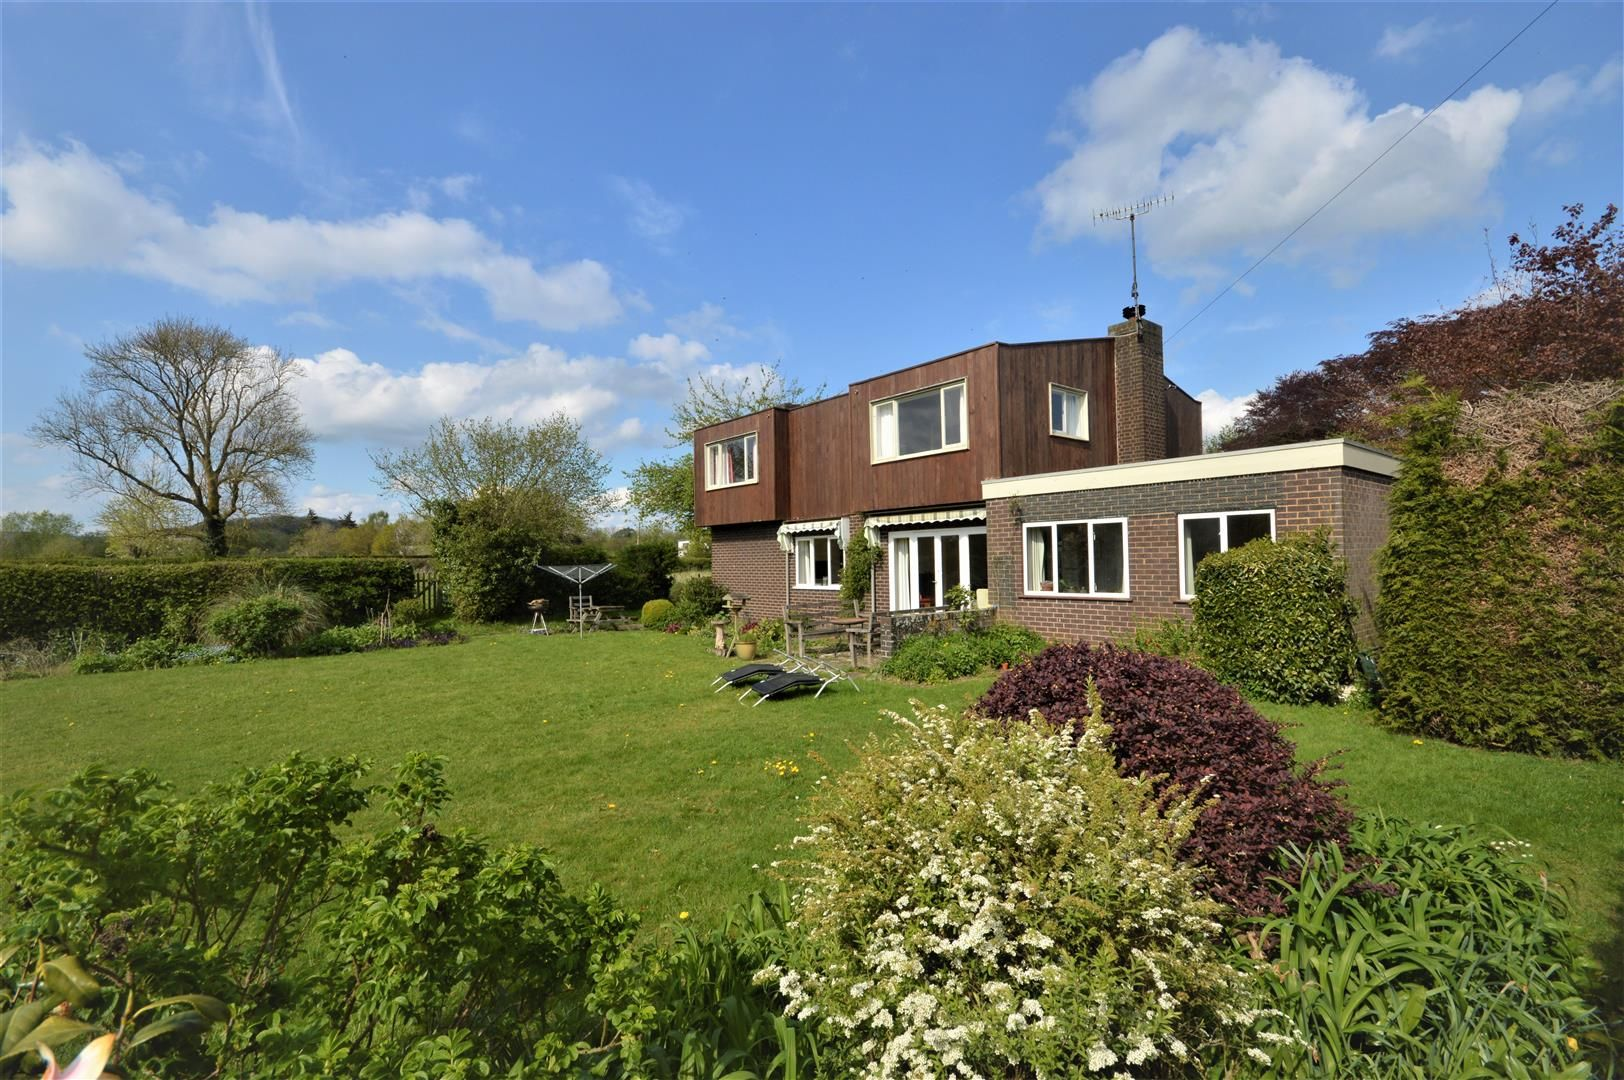 3 bed detached for sale in Eardisland  - Property Image 2